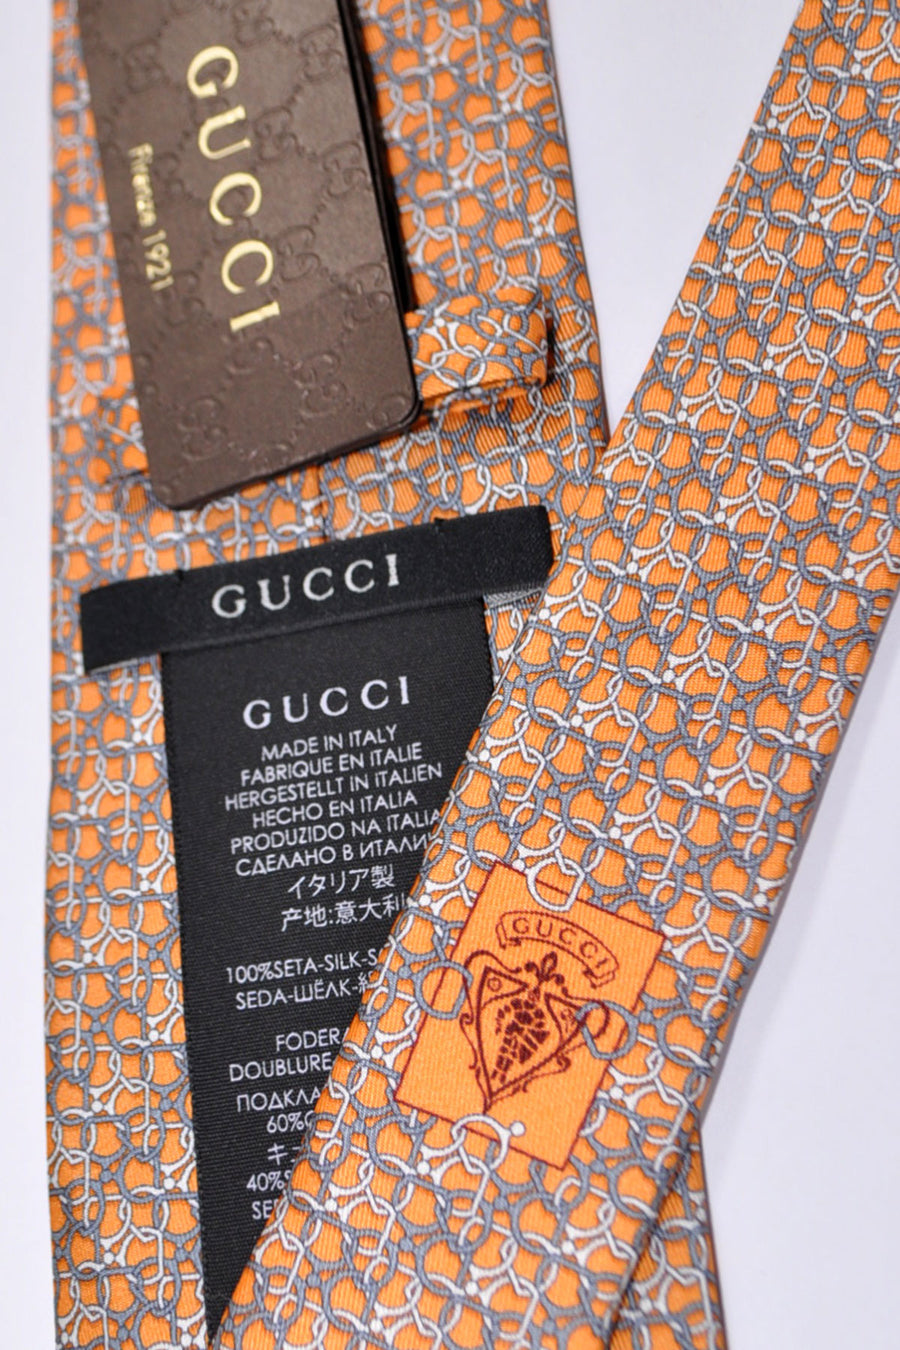 Gucci Tie Orange Gray Geometric New 2015 / 2016 Collection